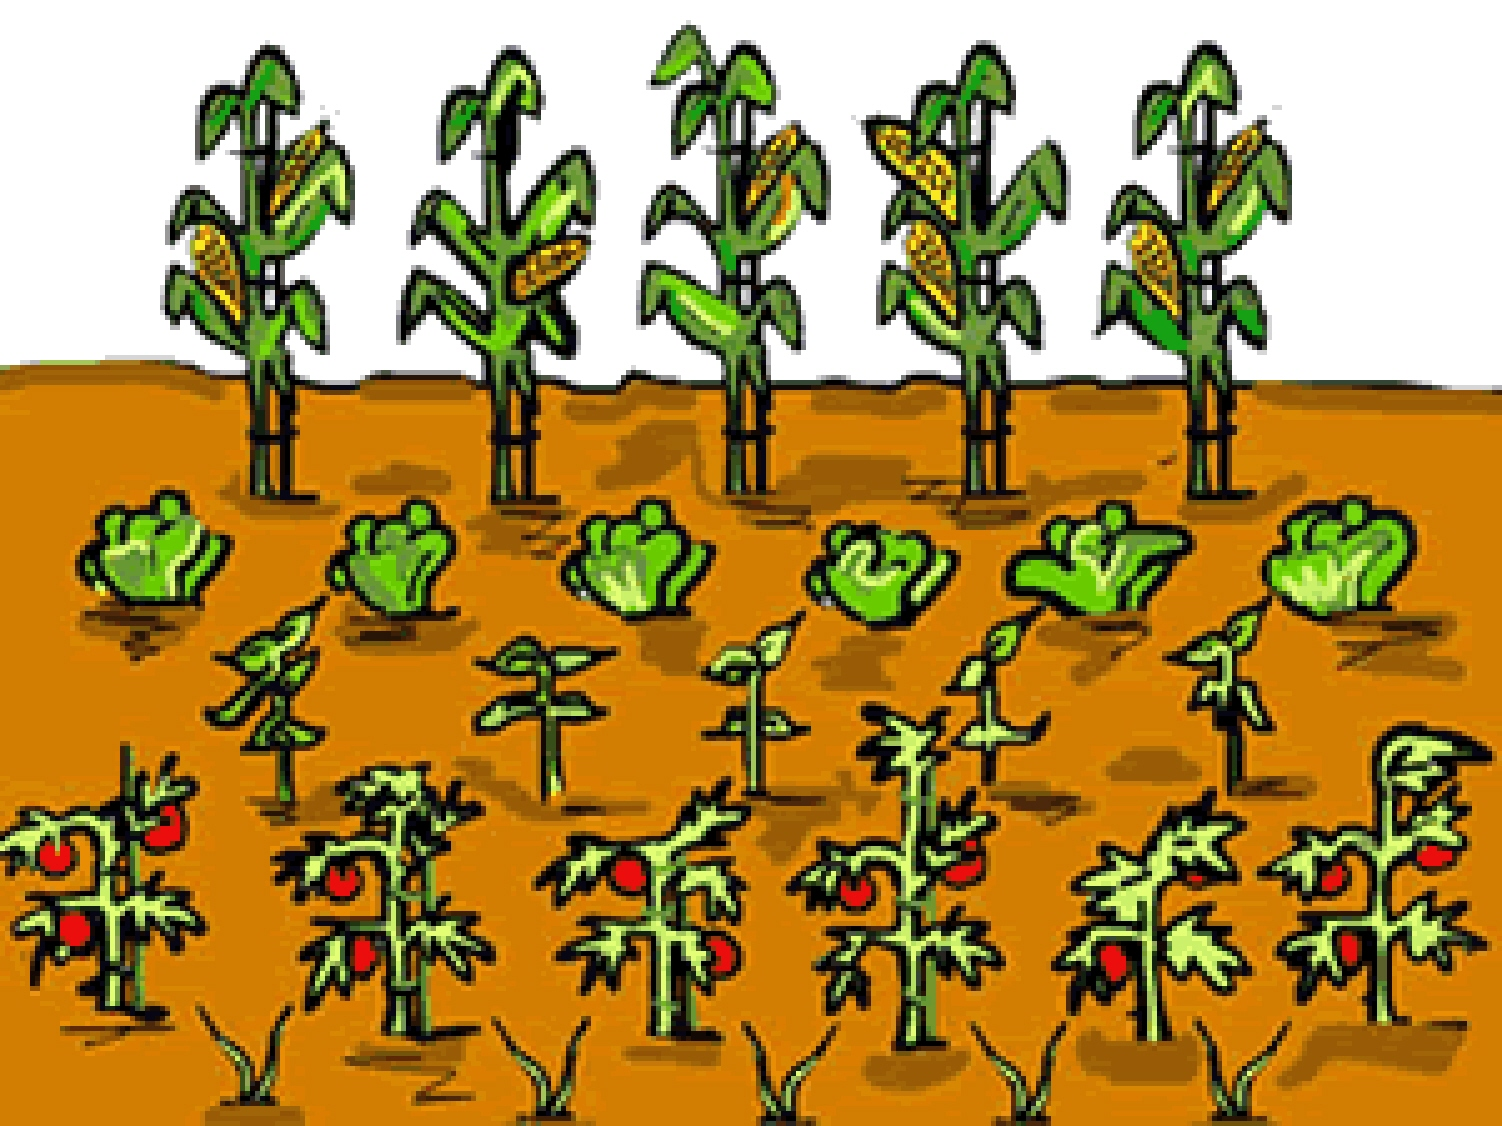 clipart garden images - photo #22